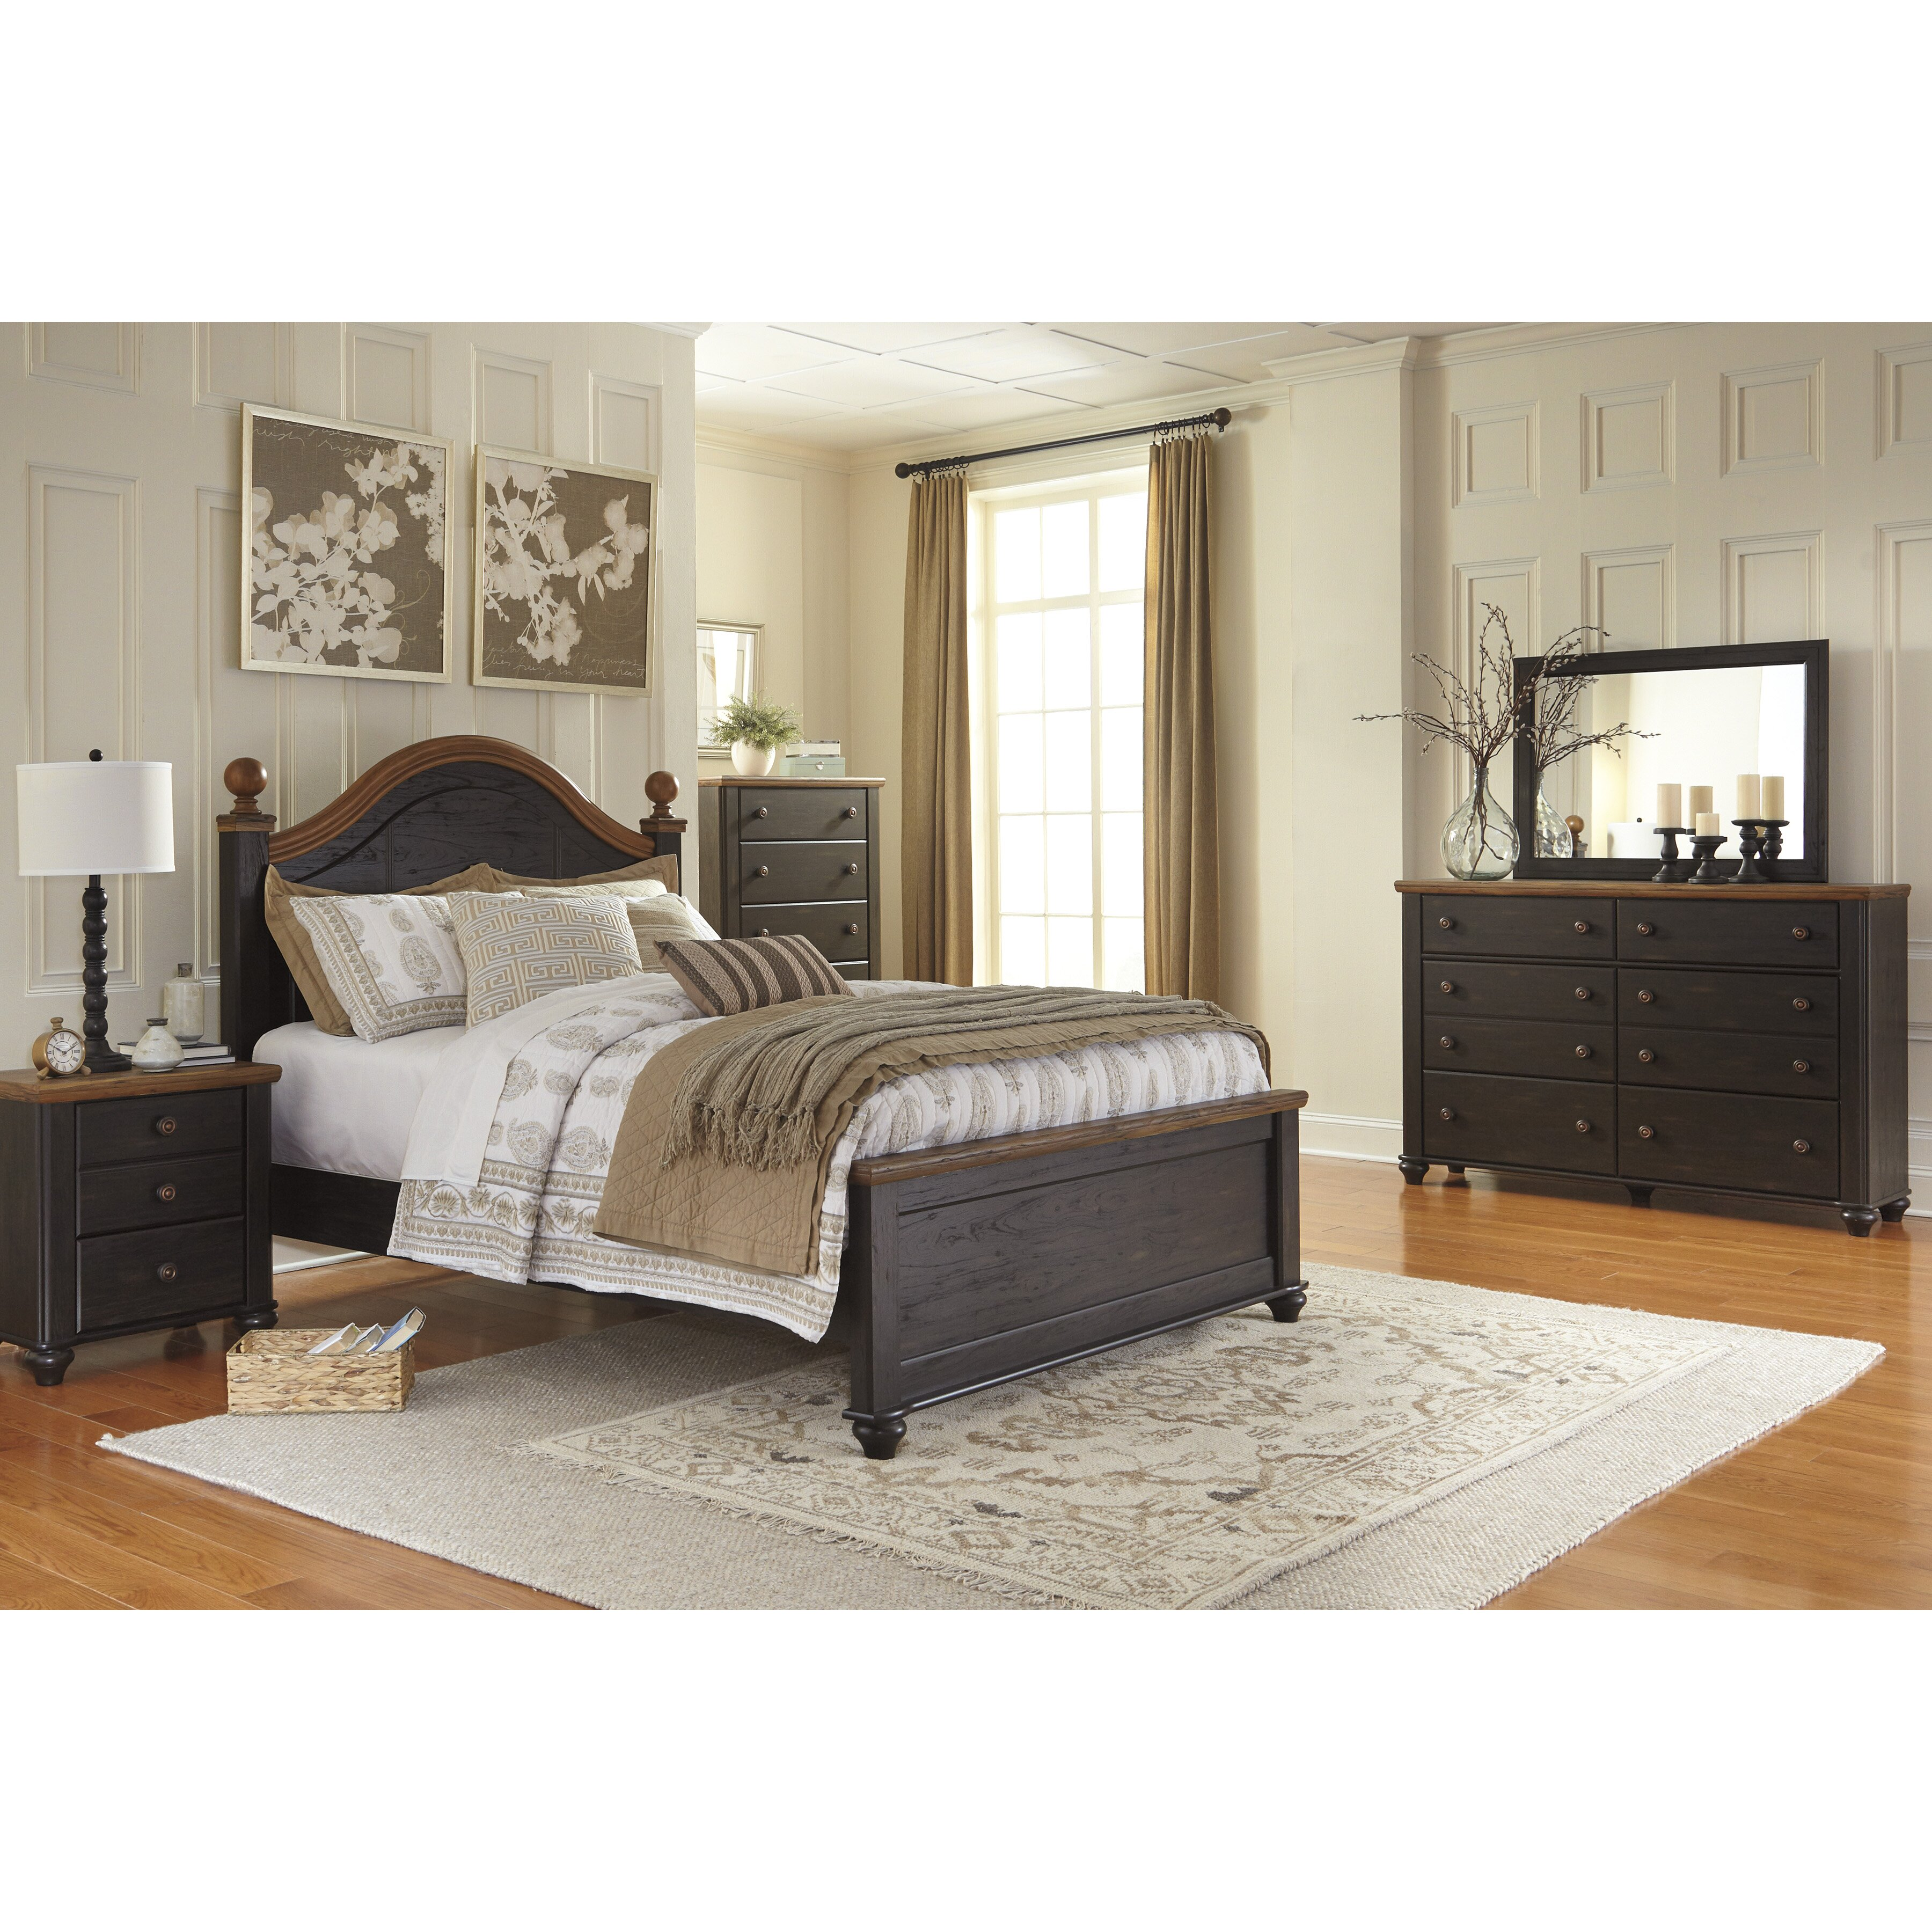 Signature Design By Ashley Panel Customizable Bedroom Set Reviews Wayfair